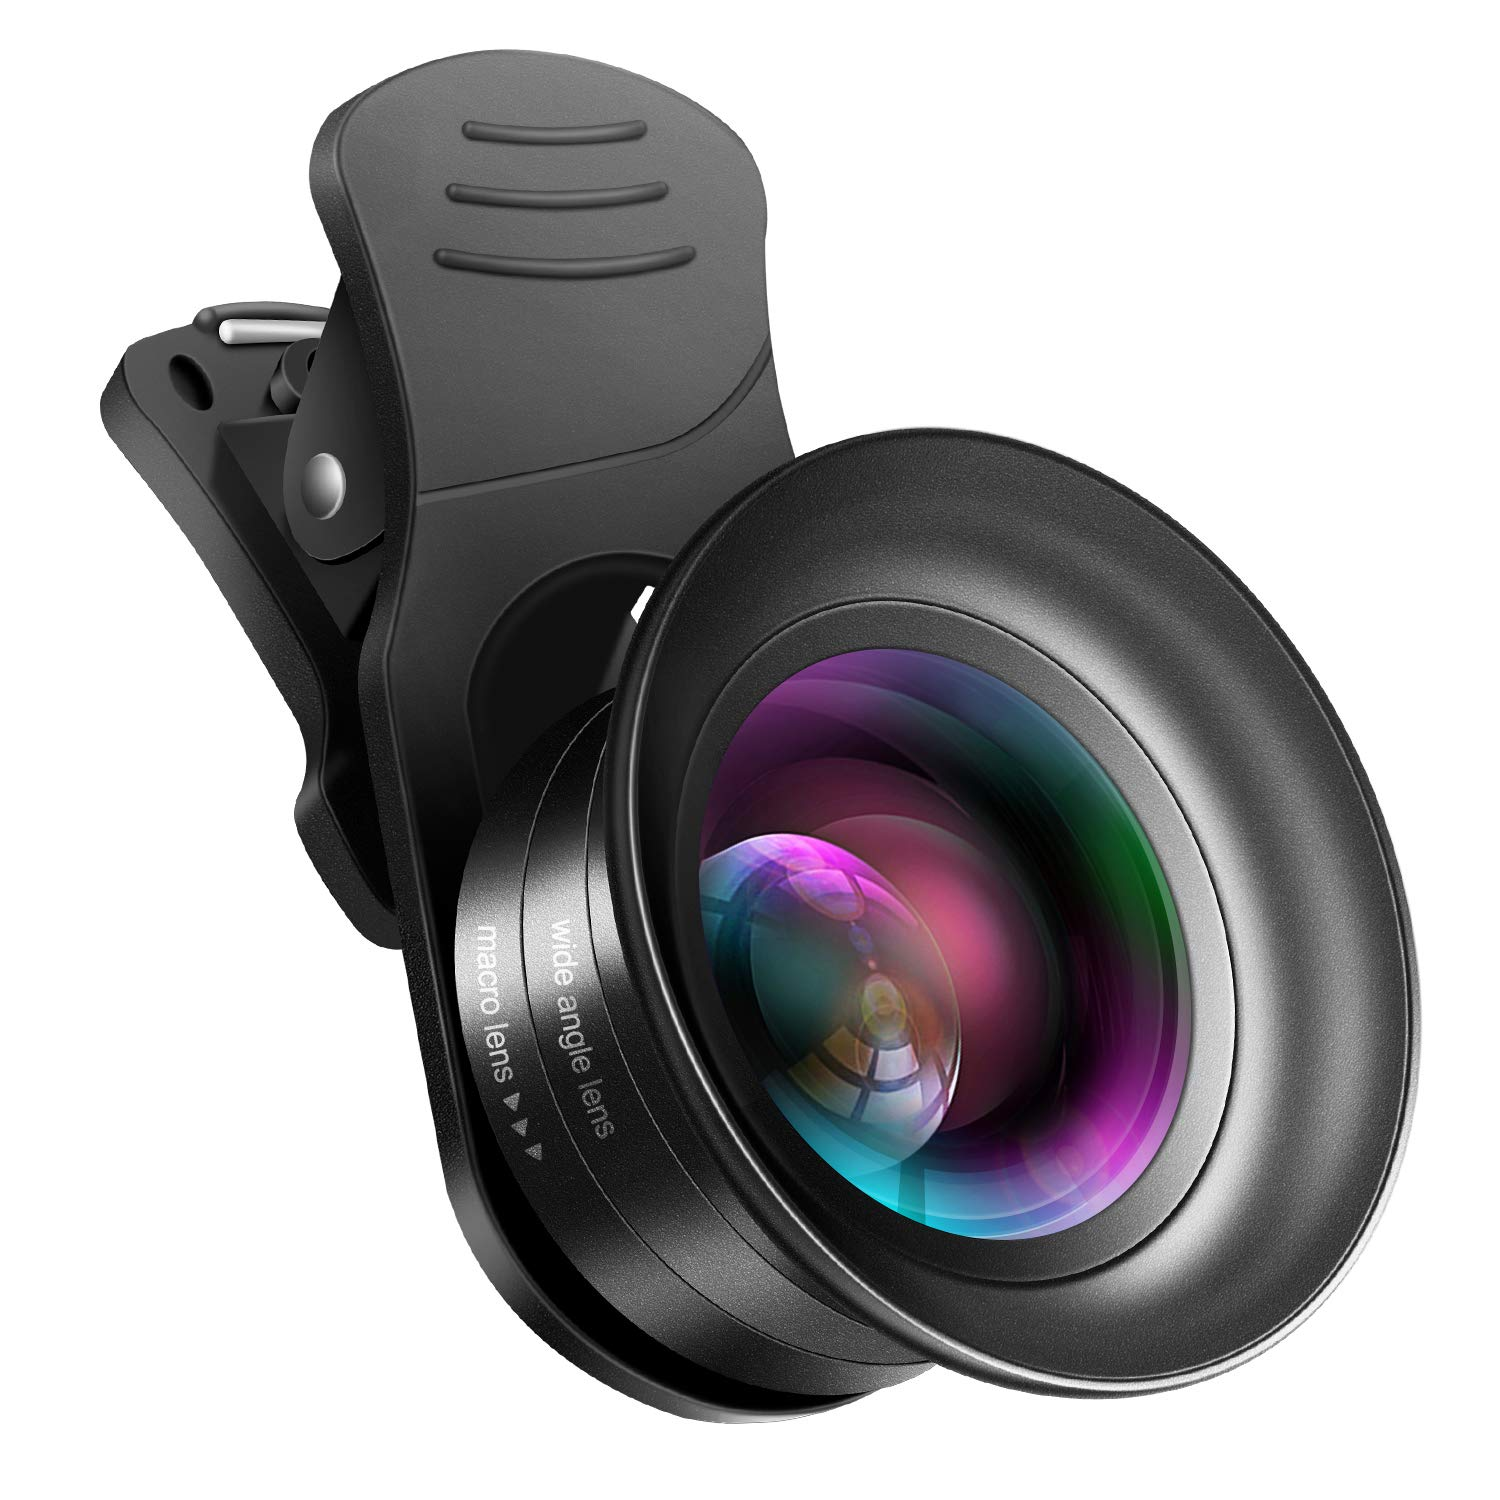 Cell Phone Camera Lens Kit – VIEWOW 4K HD 7 Optical Glasses 15X Macro 0.45X Wide Angle Phone Lens Kit with LED Light and Travel Case, Compatible with iPhone X/XS/8/7 Plus Samsung Pixel